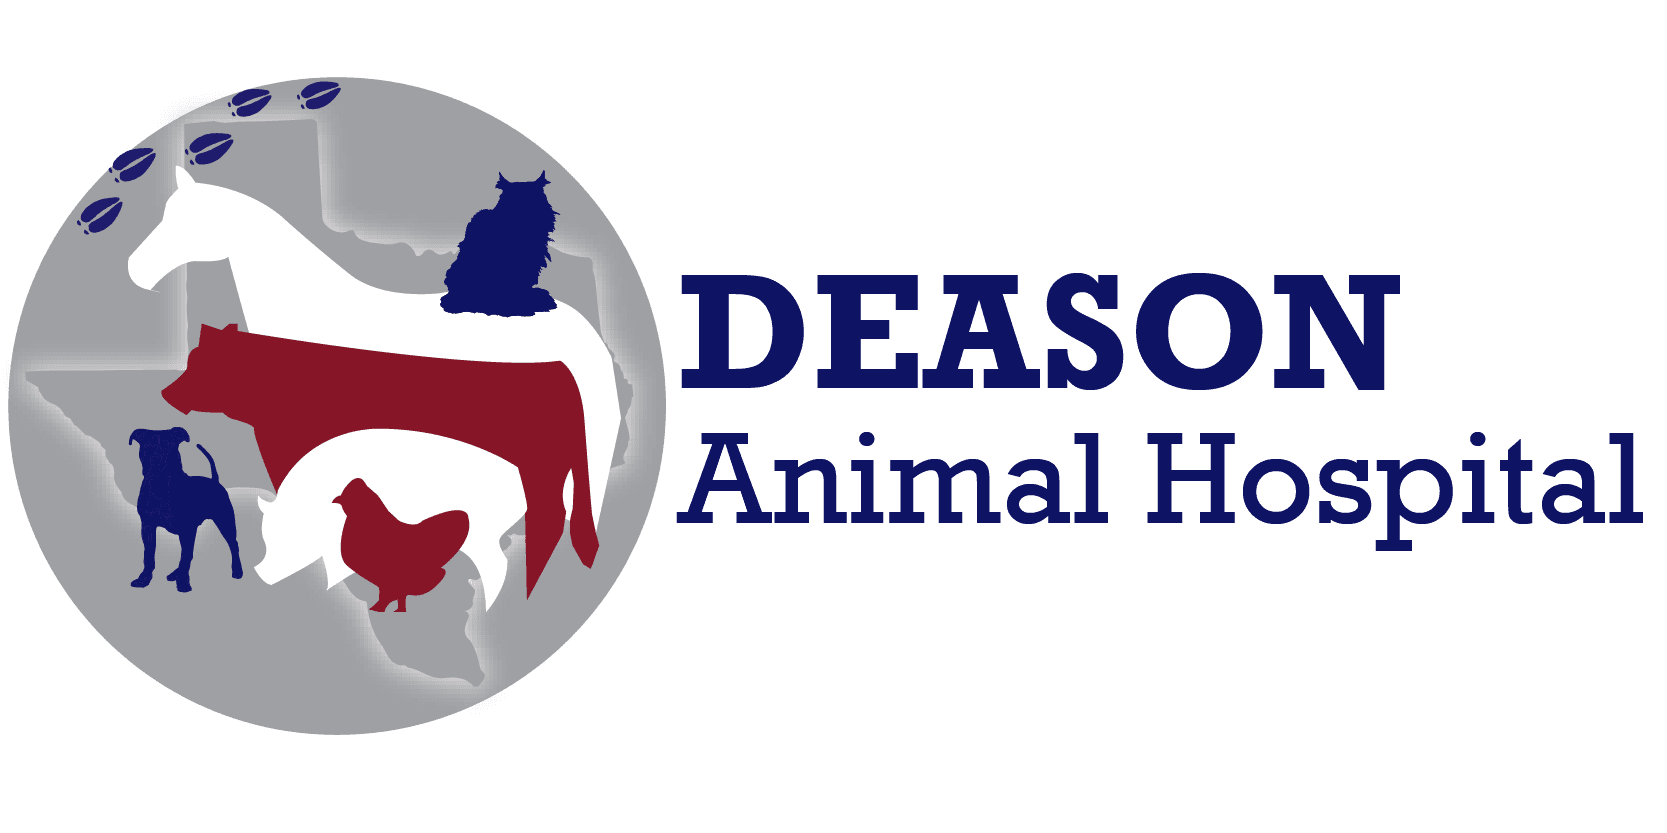 Teresa M. Appel, veterinarian at Deason Animal Hospital in Floresville Texas